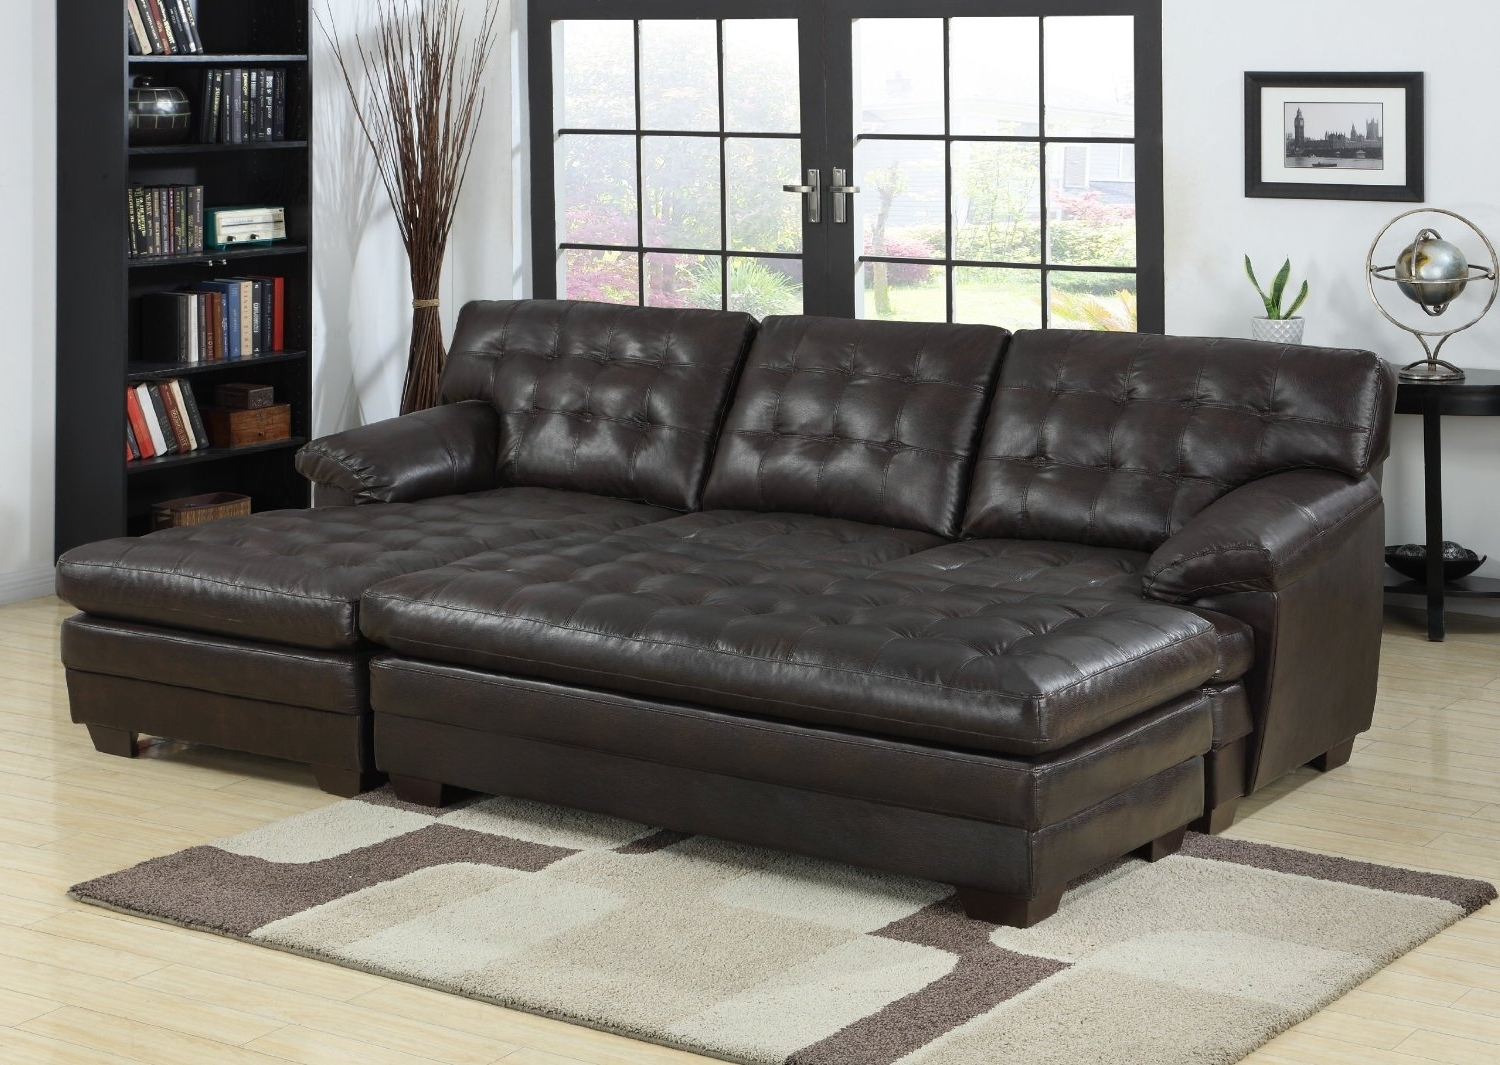 Well Known Double Chaise Lounge Sofas Regarding Double Chaise Lounge Sofa Image Gallery — The Home Redesign : The (View 4 of 15)